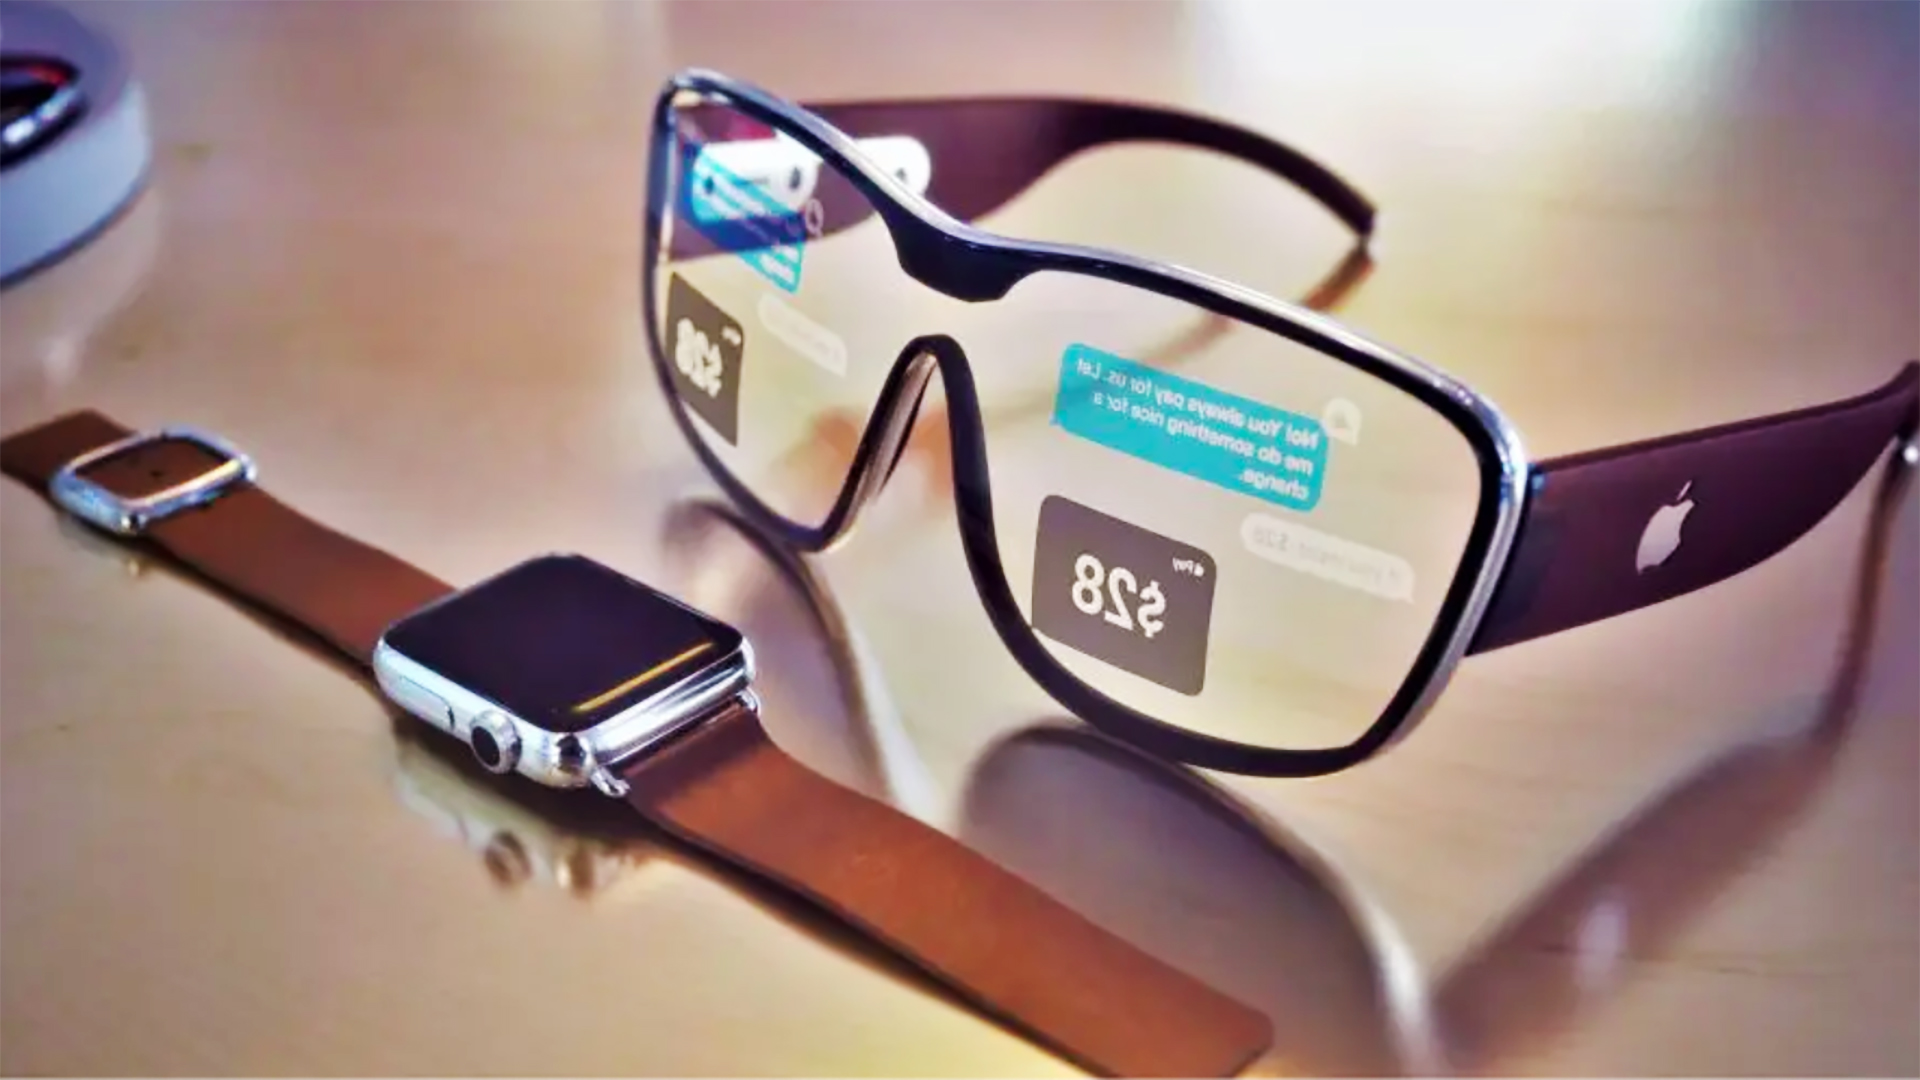 A rendered mockup of what Apple Glasses might look like.